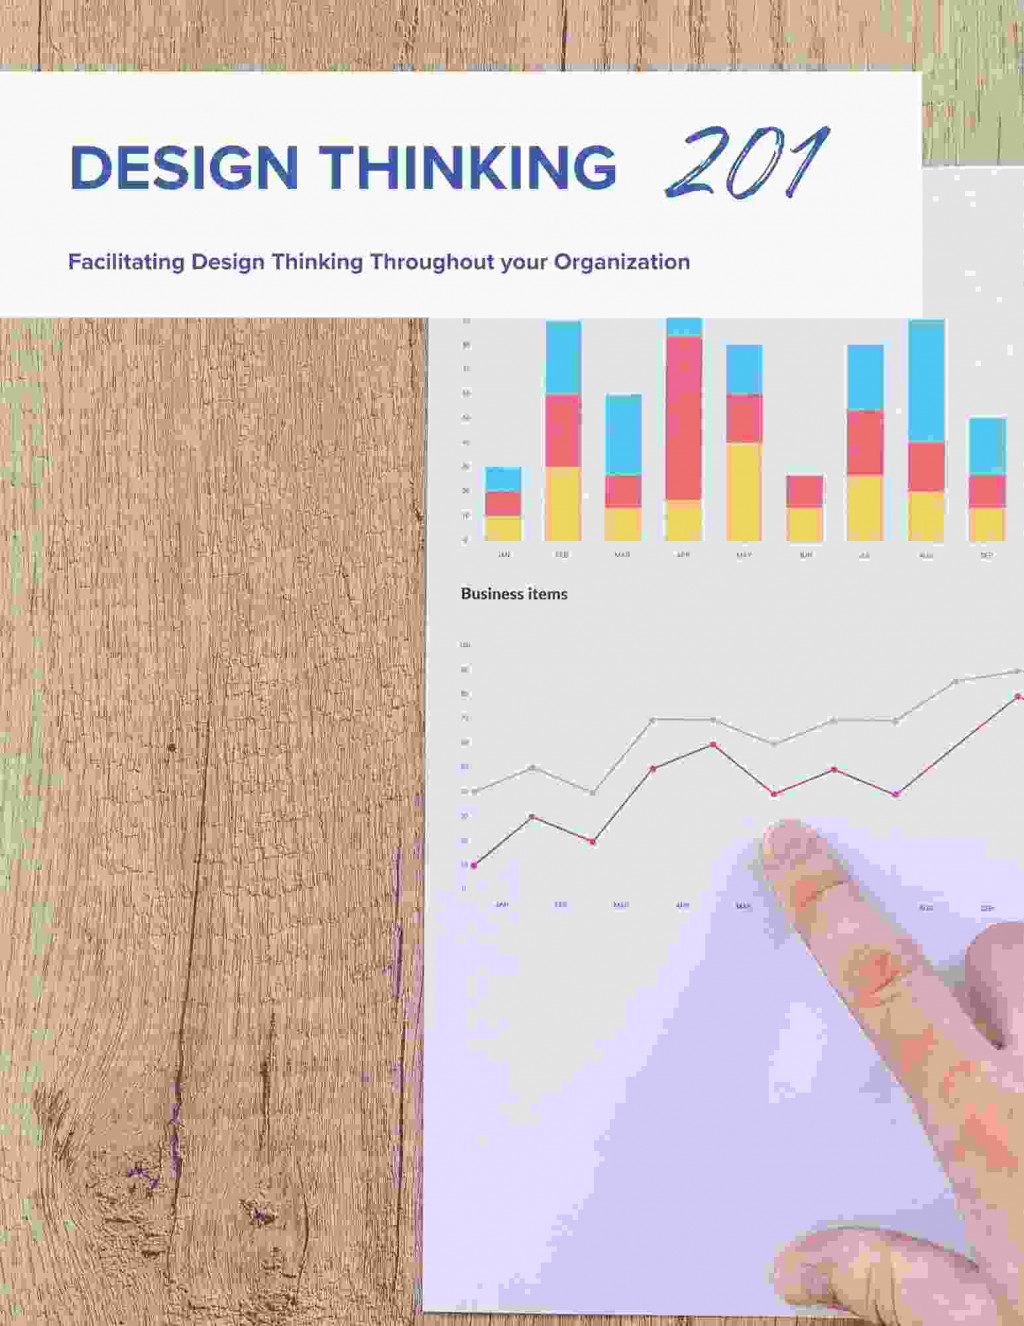 Design & Innovation Global | Human Centered Design Research, News, Events